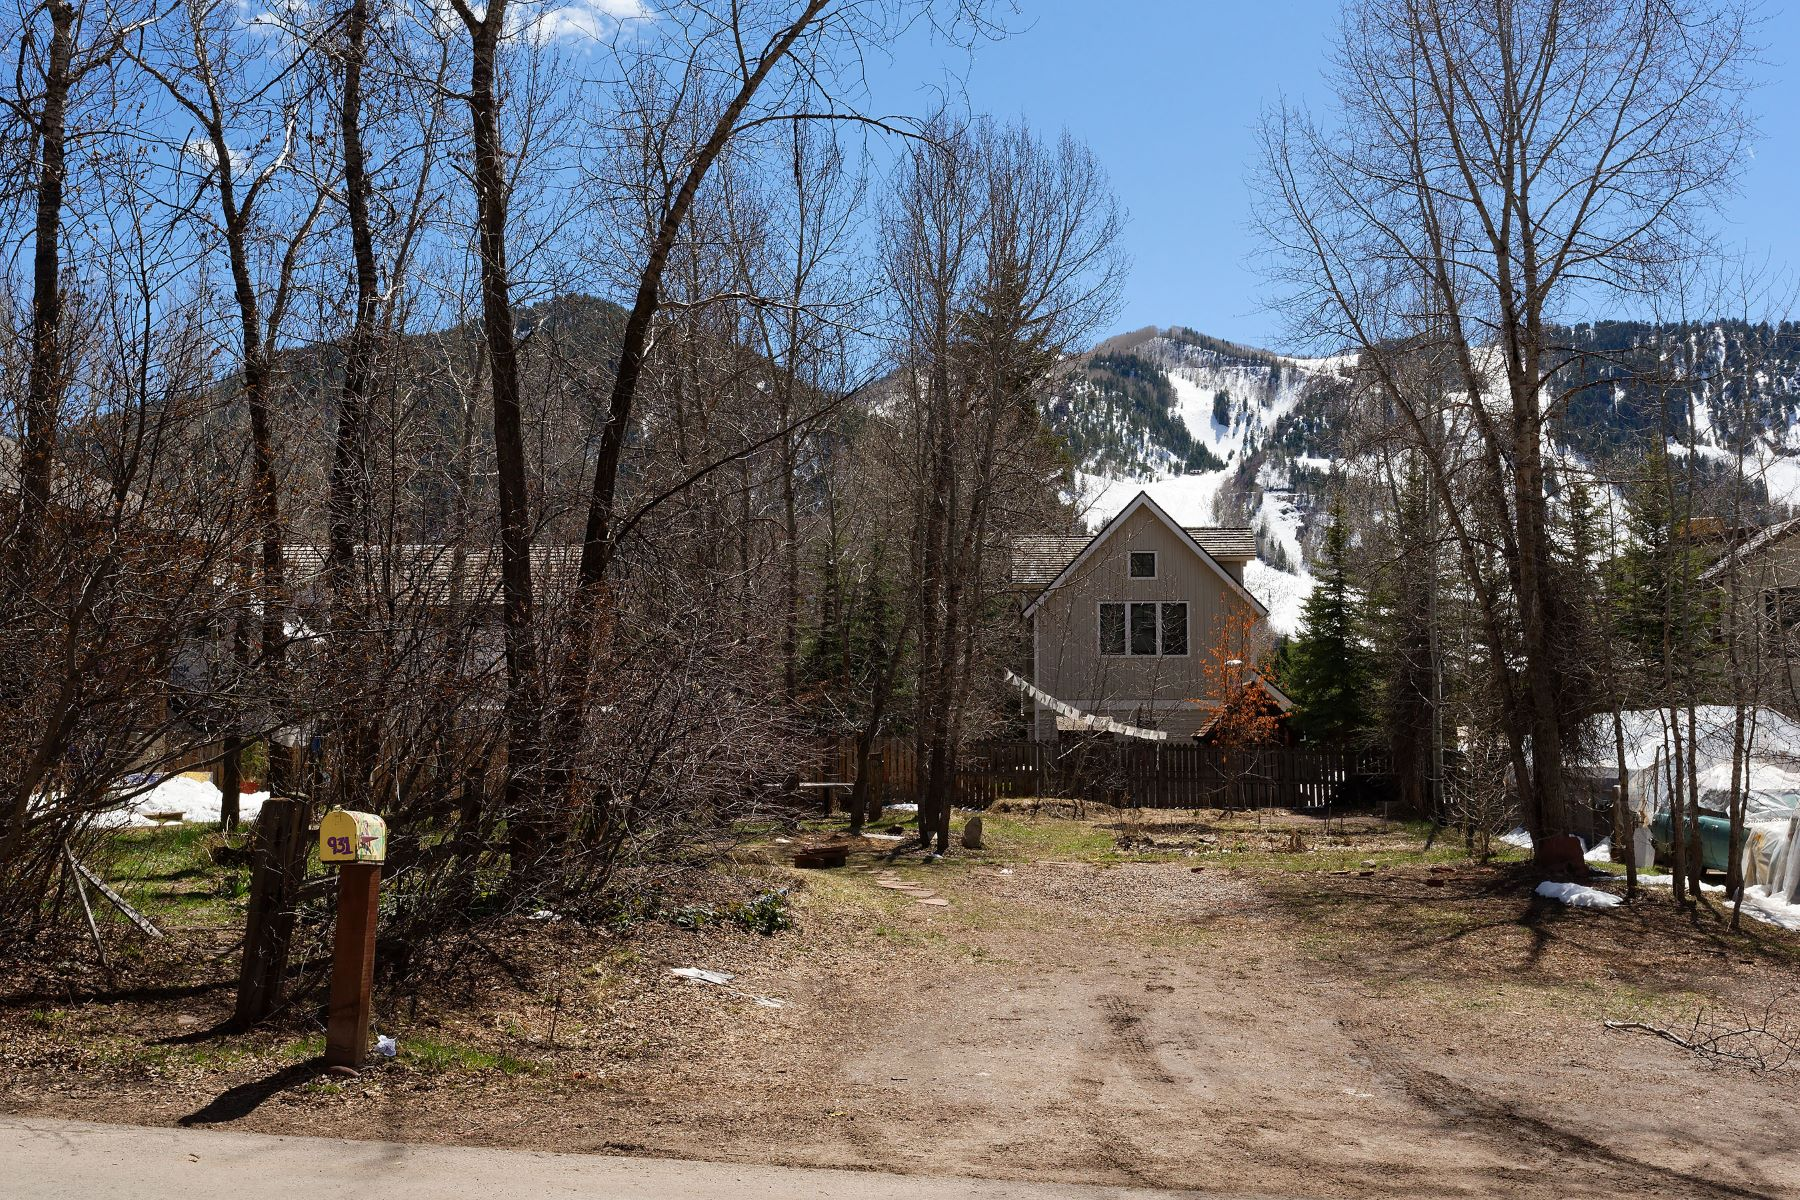 Land for Sale at Lots of Potential 931 Gibson Avenue, Smuggler, Aspen, Colorado, 81611 United States